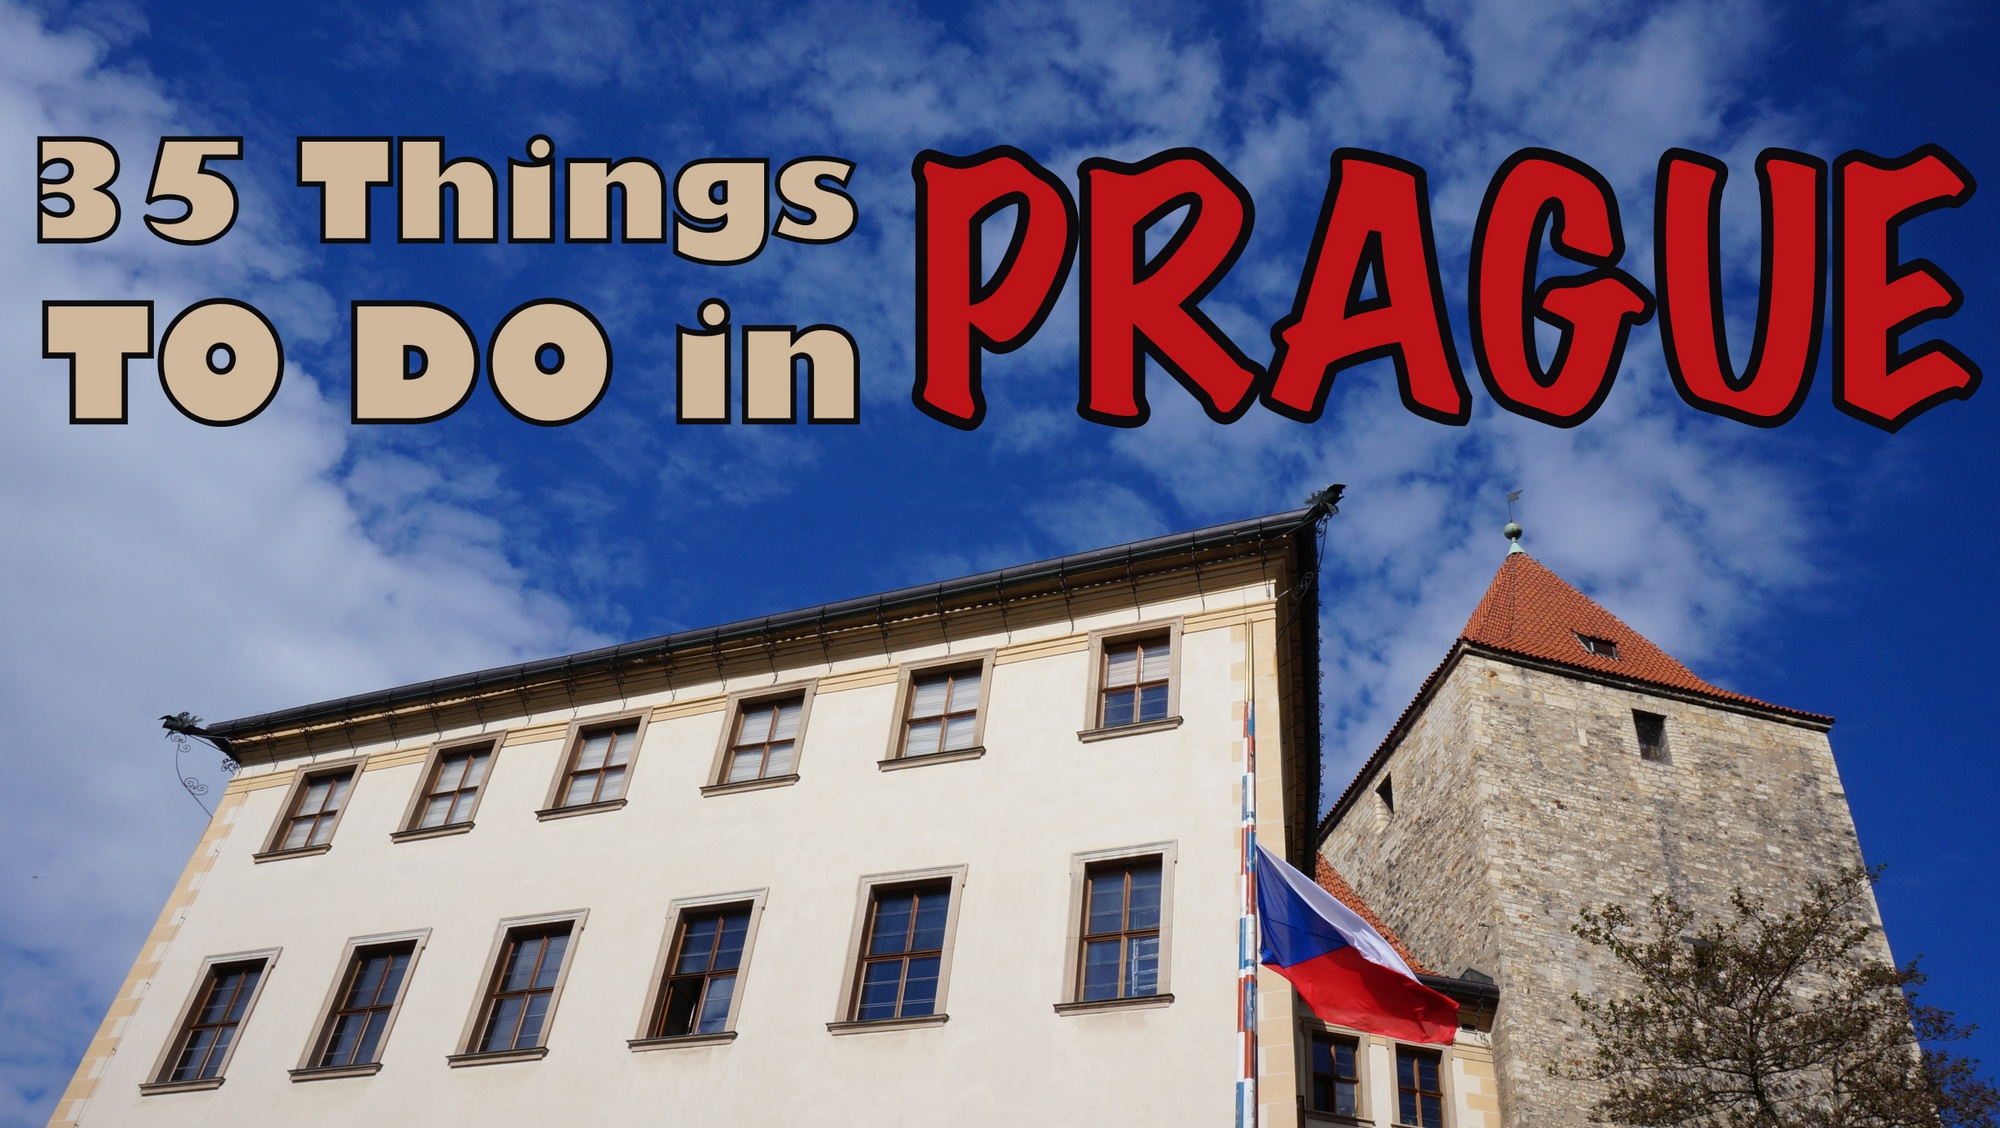 35 things to do in Prague travel guide